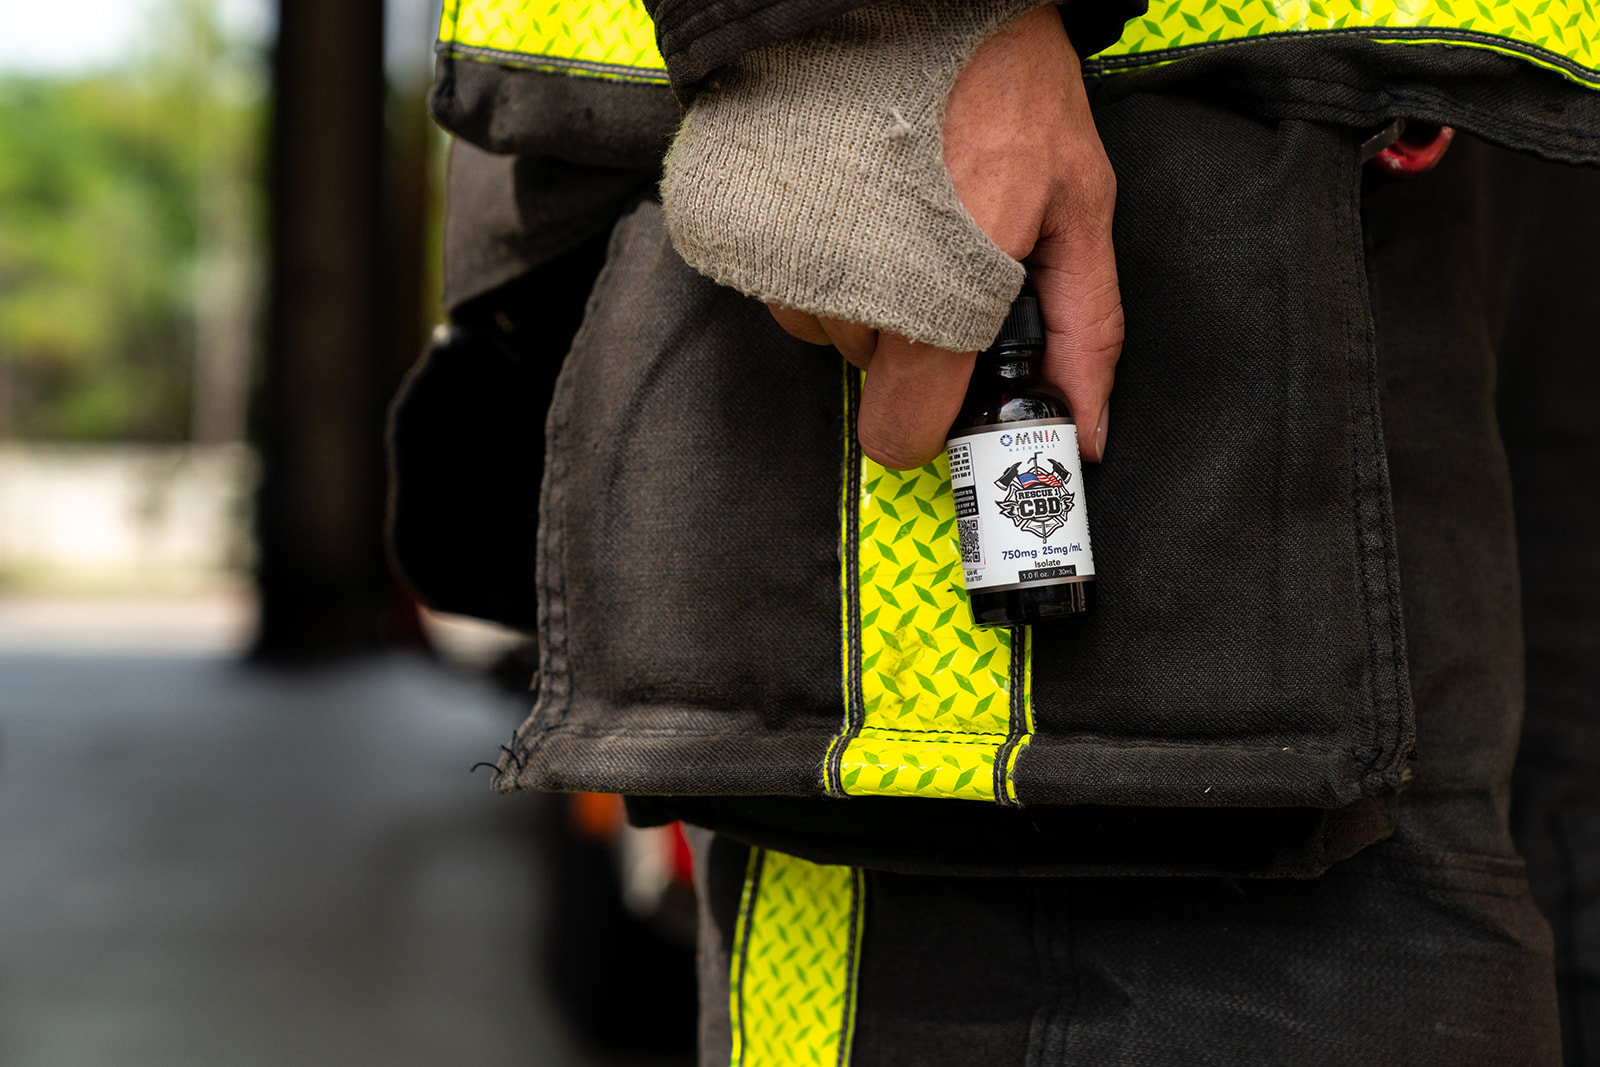 a firefighter wearing gear holding a bottle of rescue 1 CBD at his side